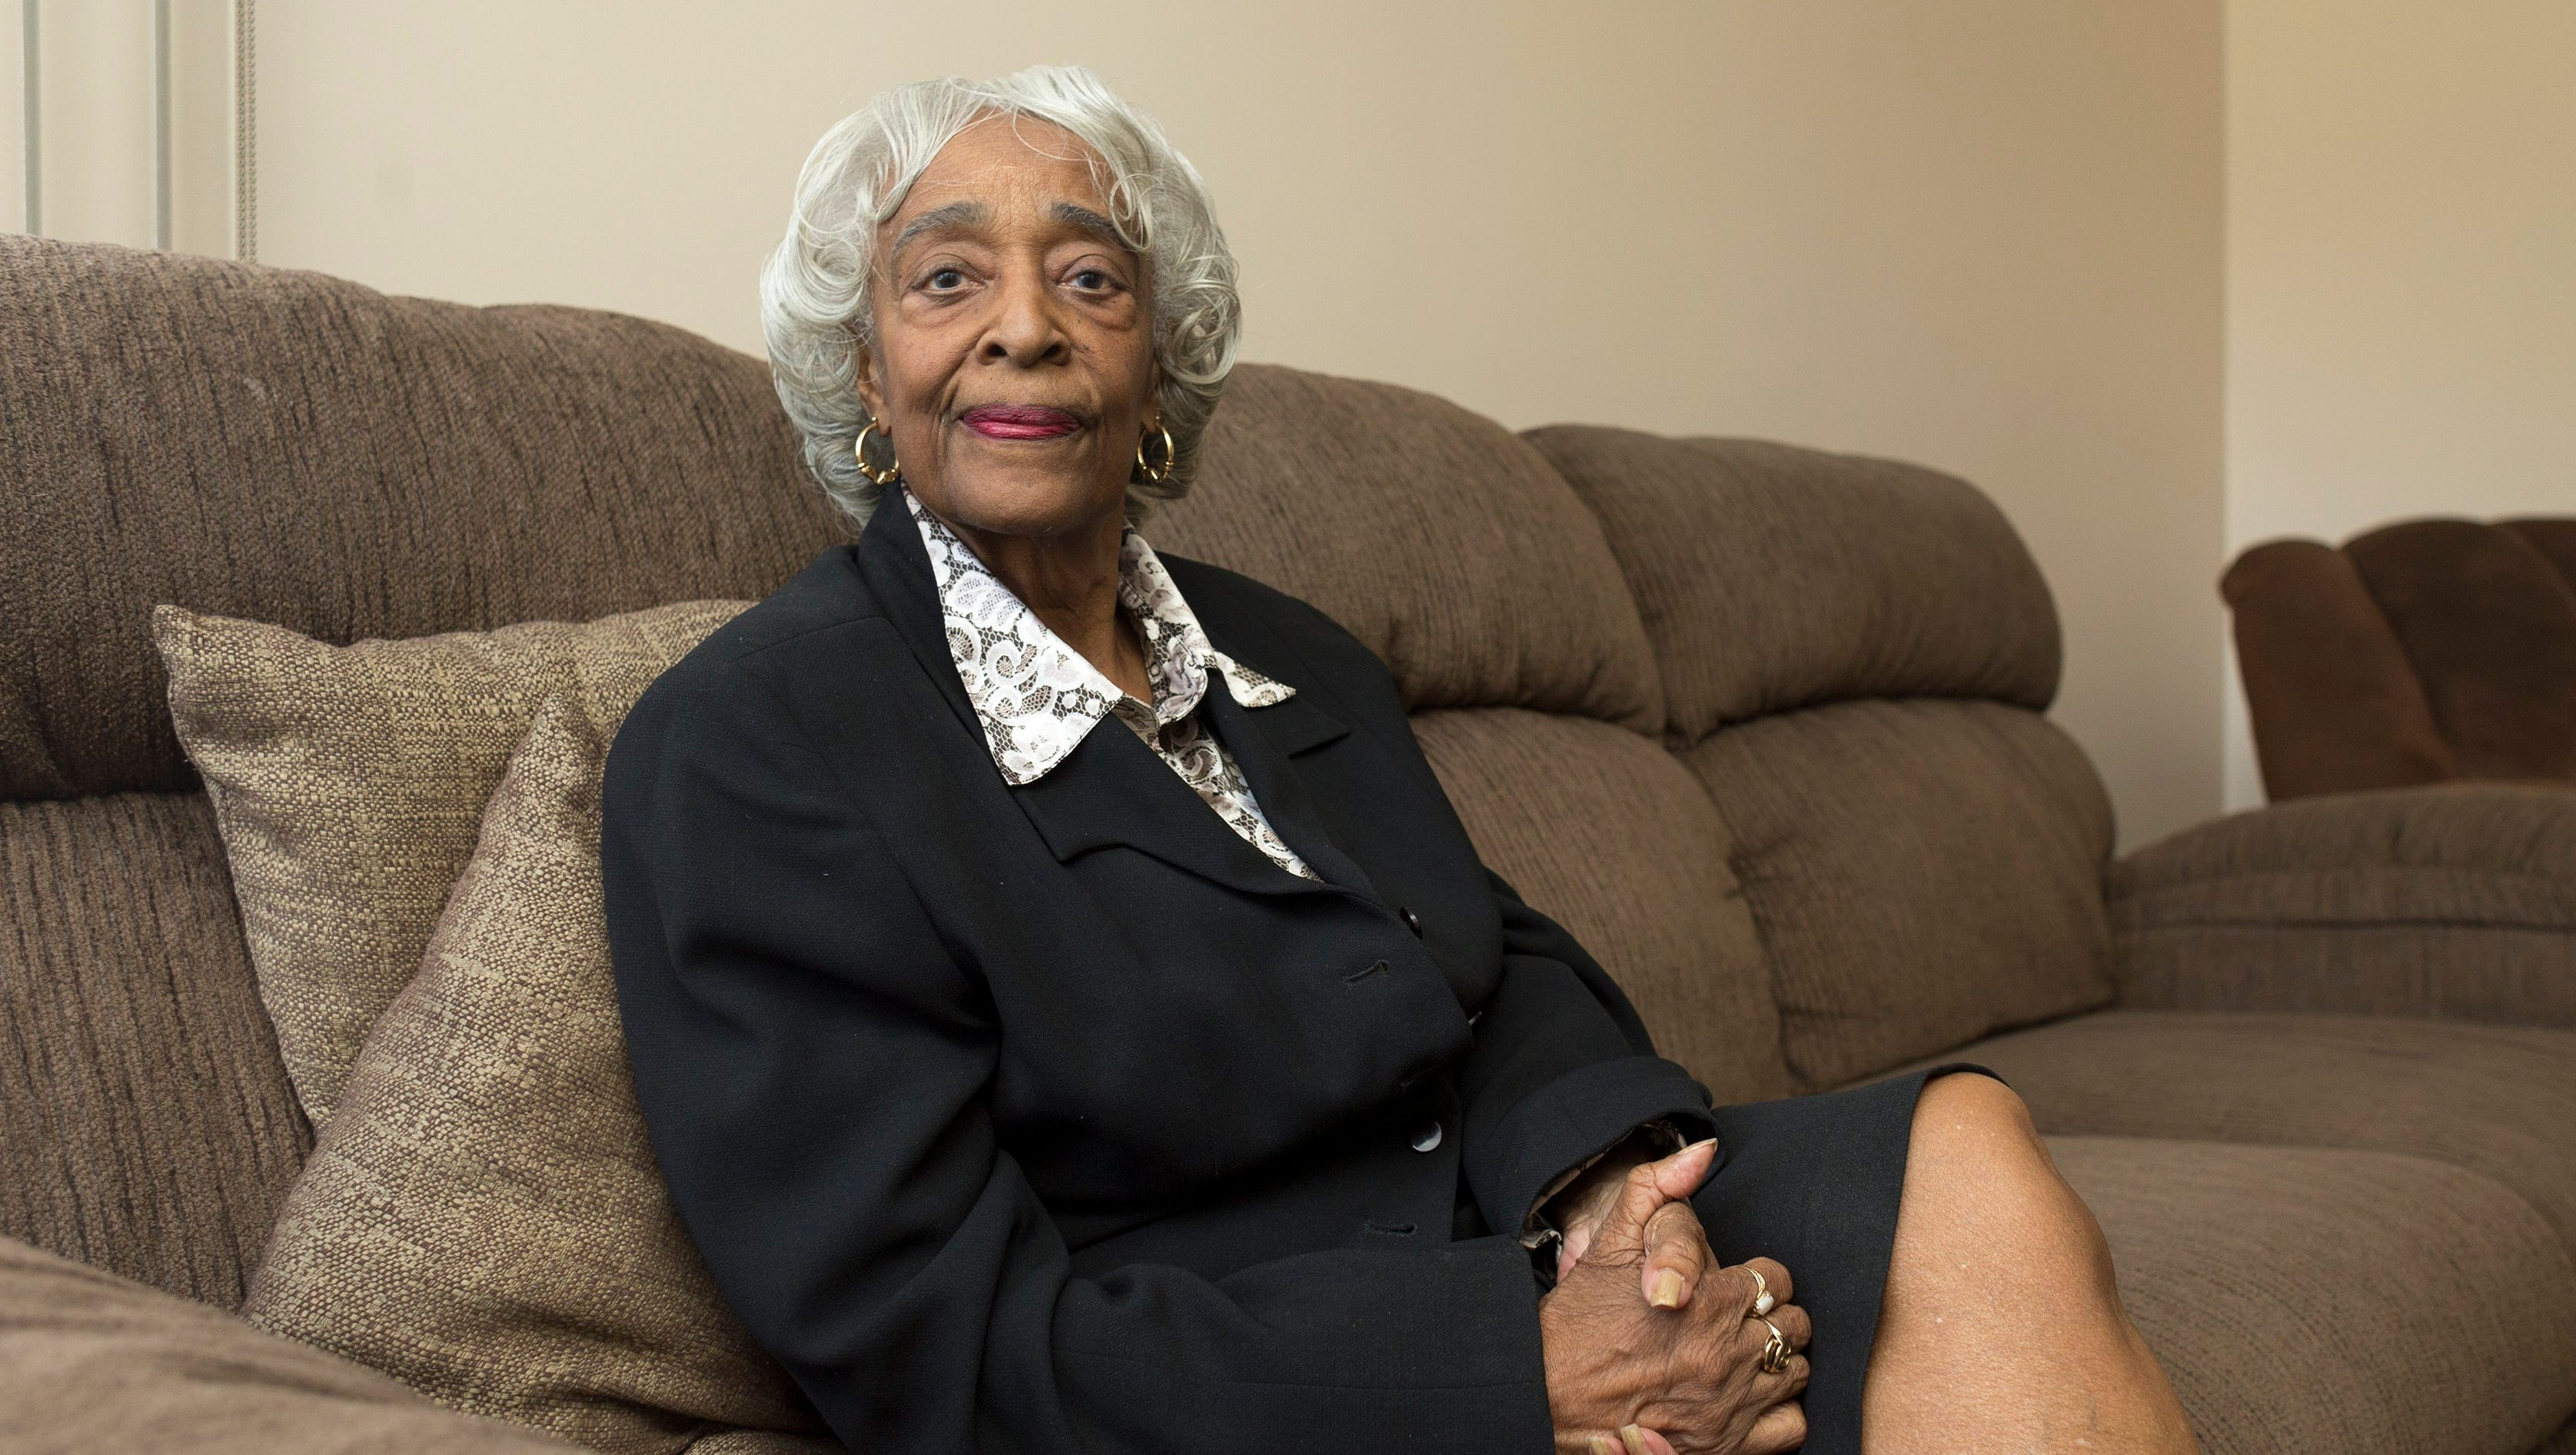 freep.com - Susan Tompor, Detroit Free Press - Even 5 years later, retirees feel the effects of Detroit's bankruptcy